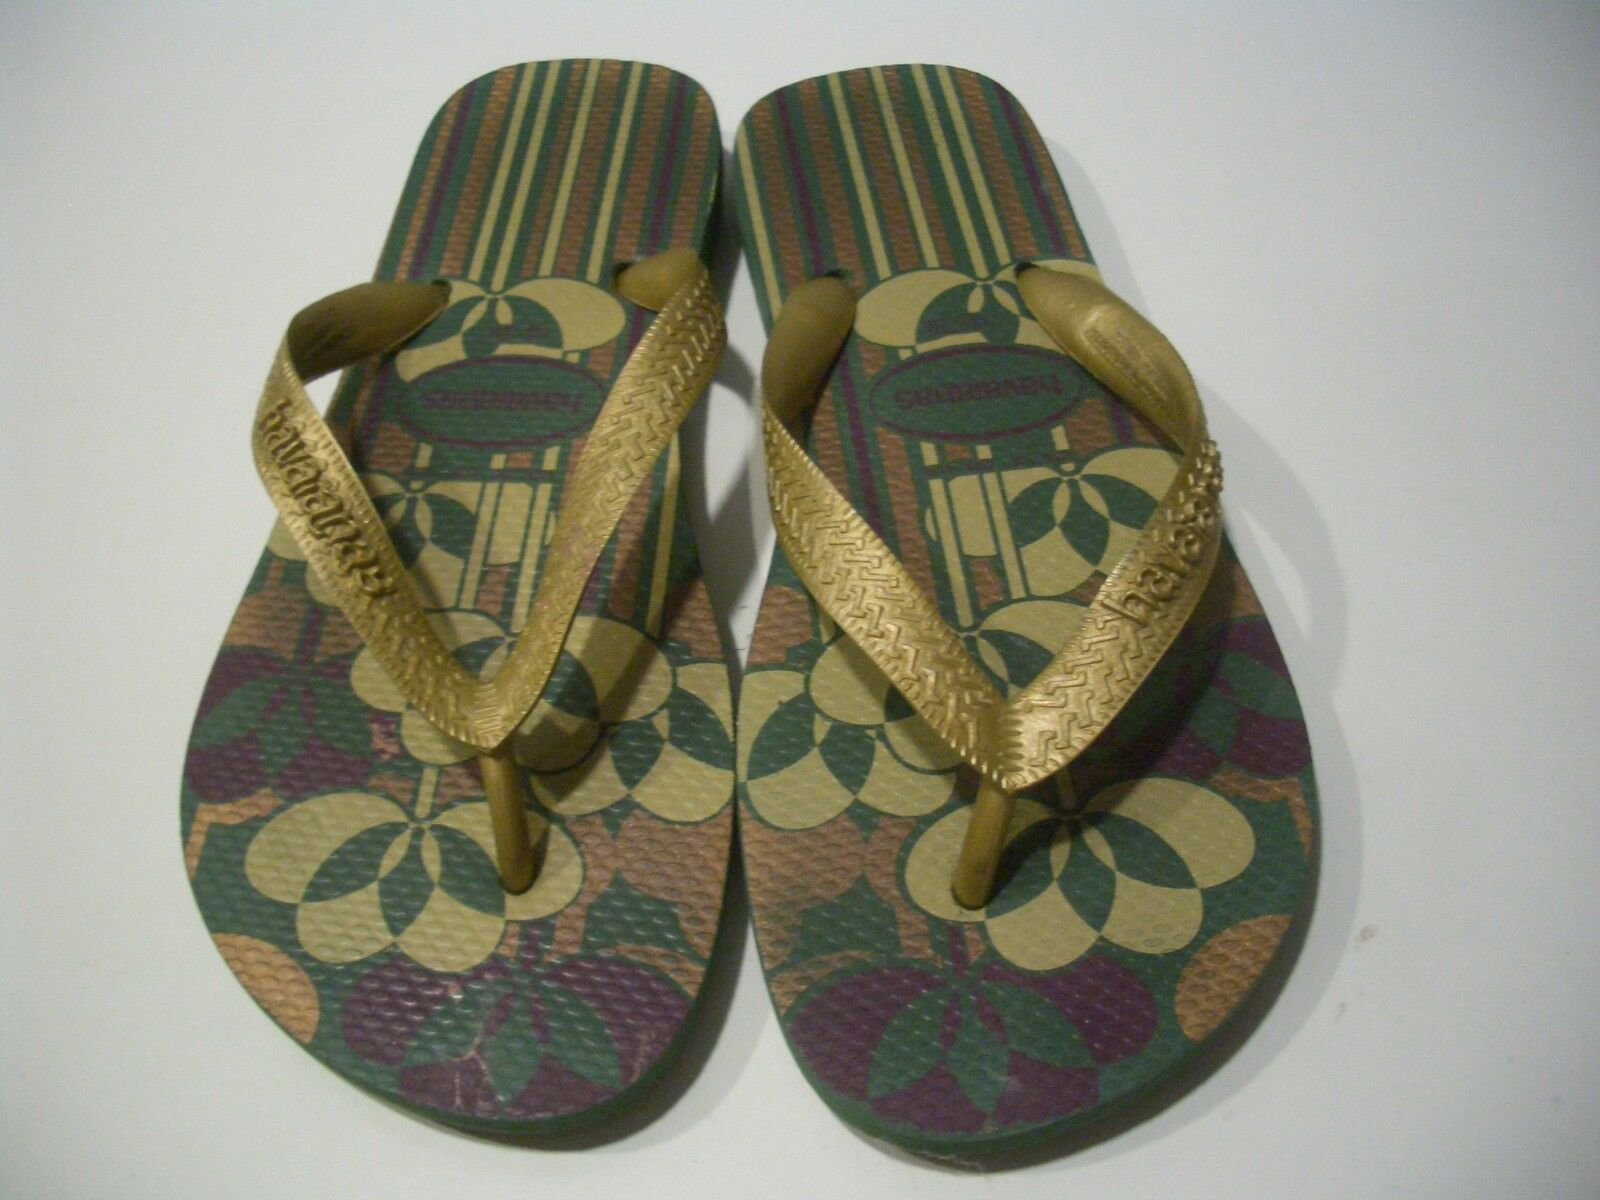 HAVAIANAS SLIM FLORAL/GOLD LADIES M RUBBER THONGS,FLIP FLOPS SZ 9 M LADIES BRAZIL e2cde2